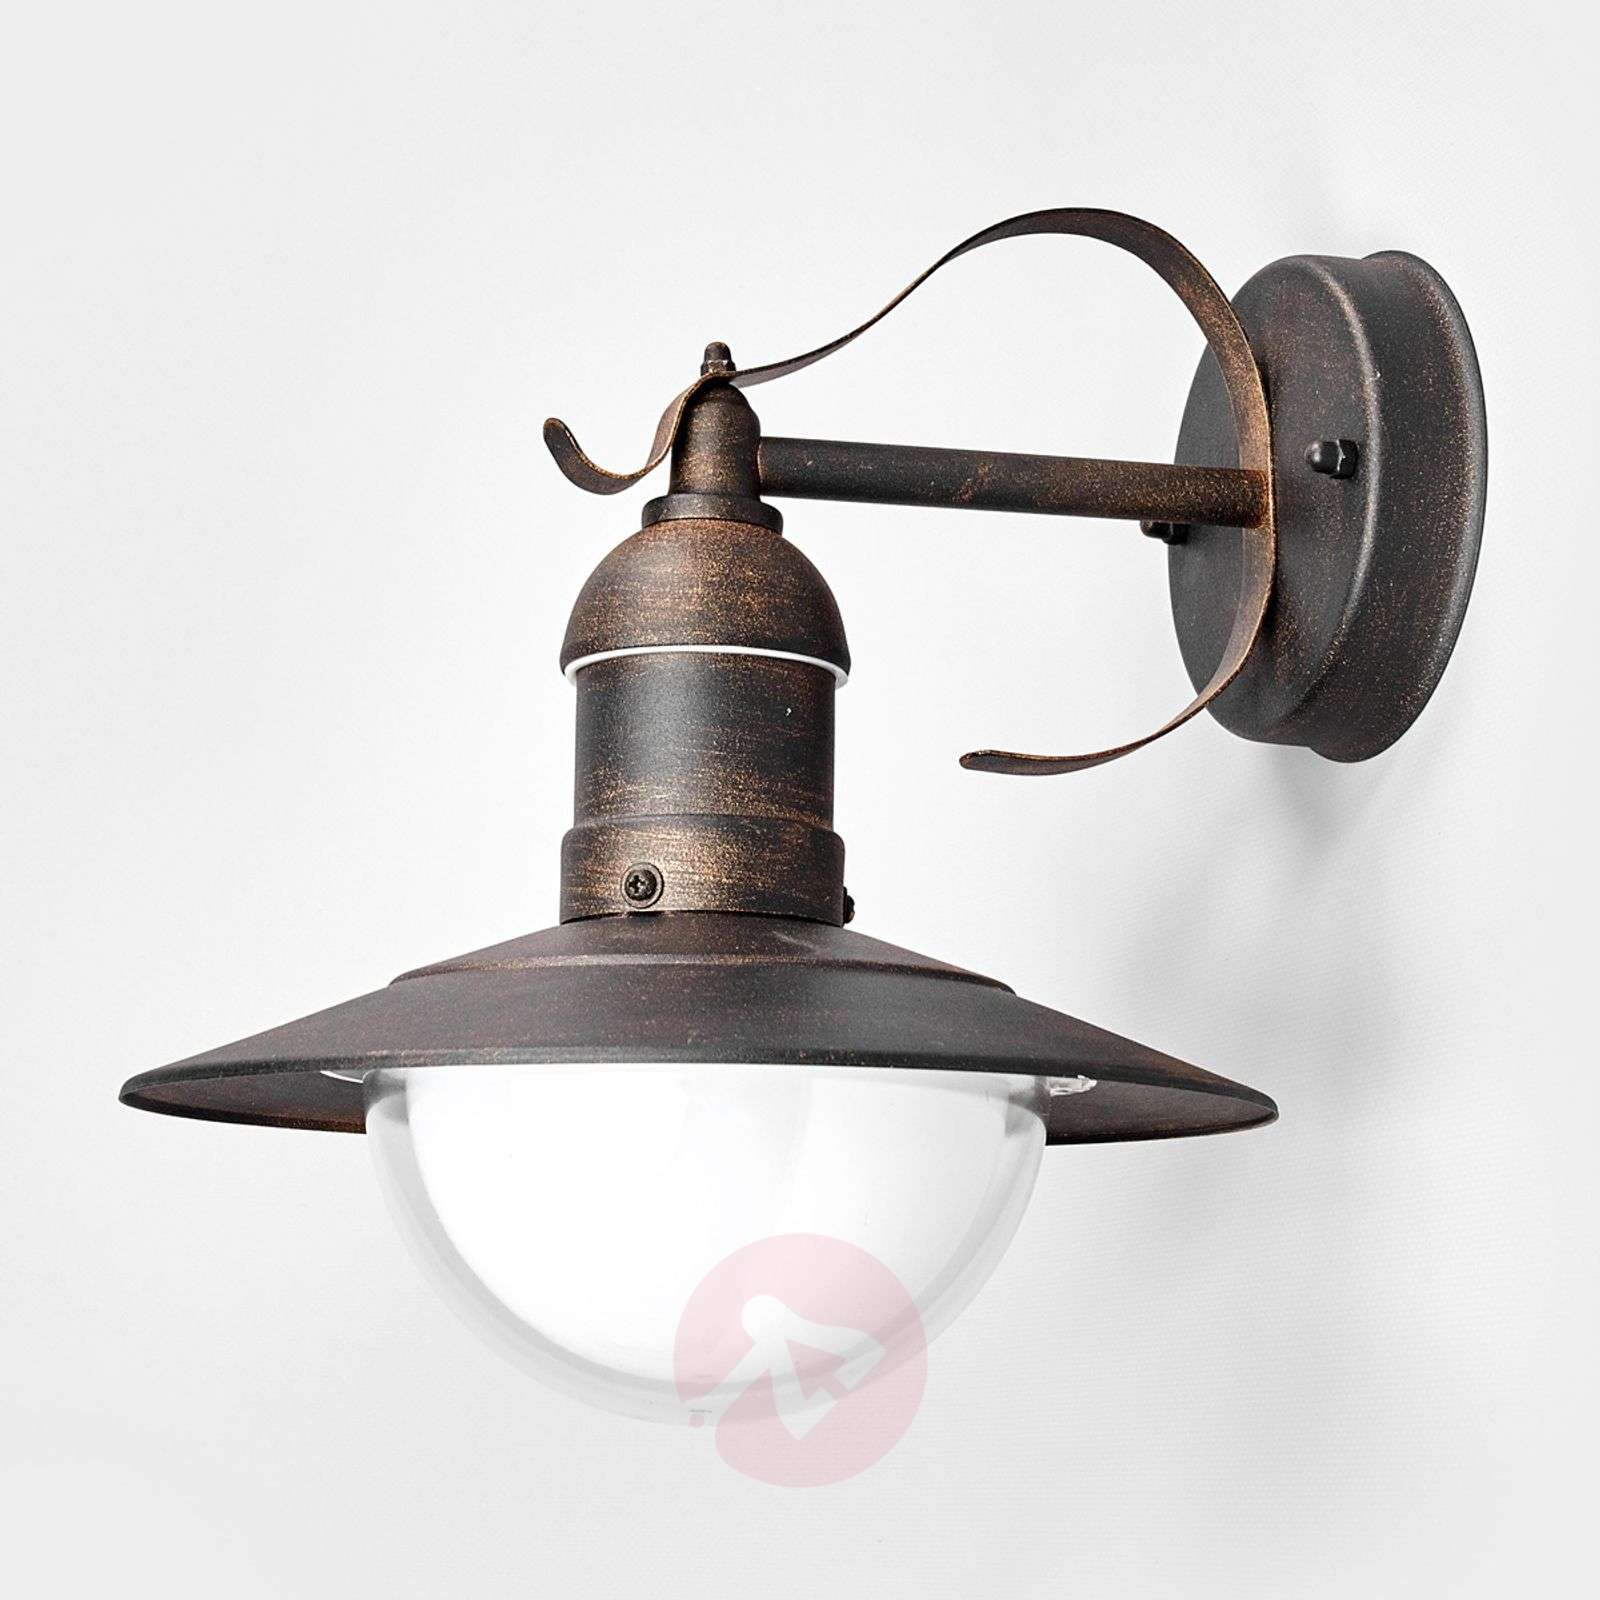 Outdoor Wall Lights Uk: Antique-looking LED Outdoor Wall Light Clea